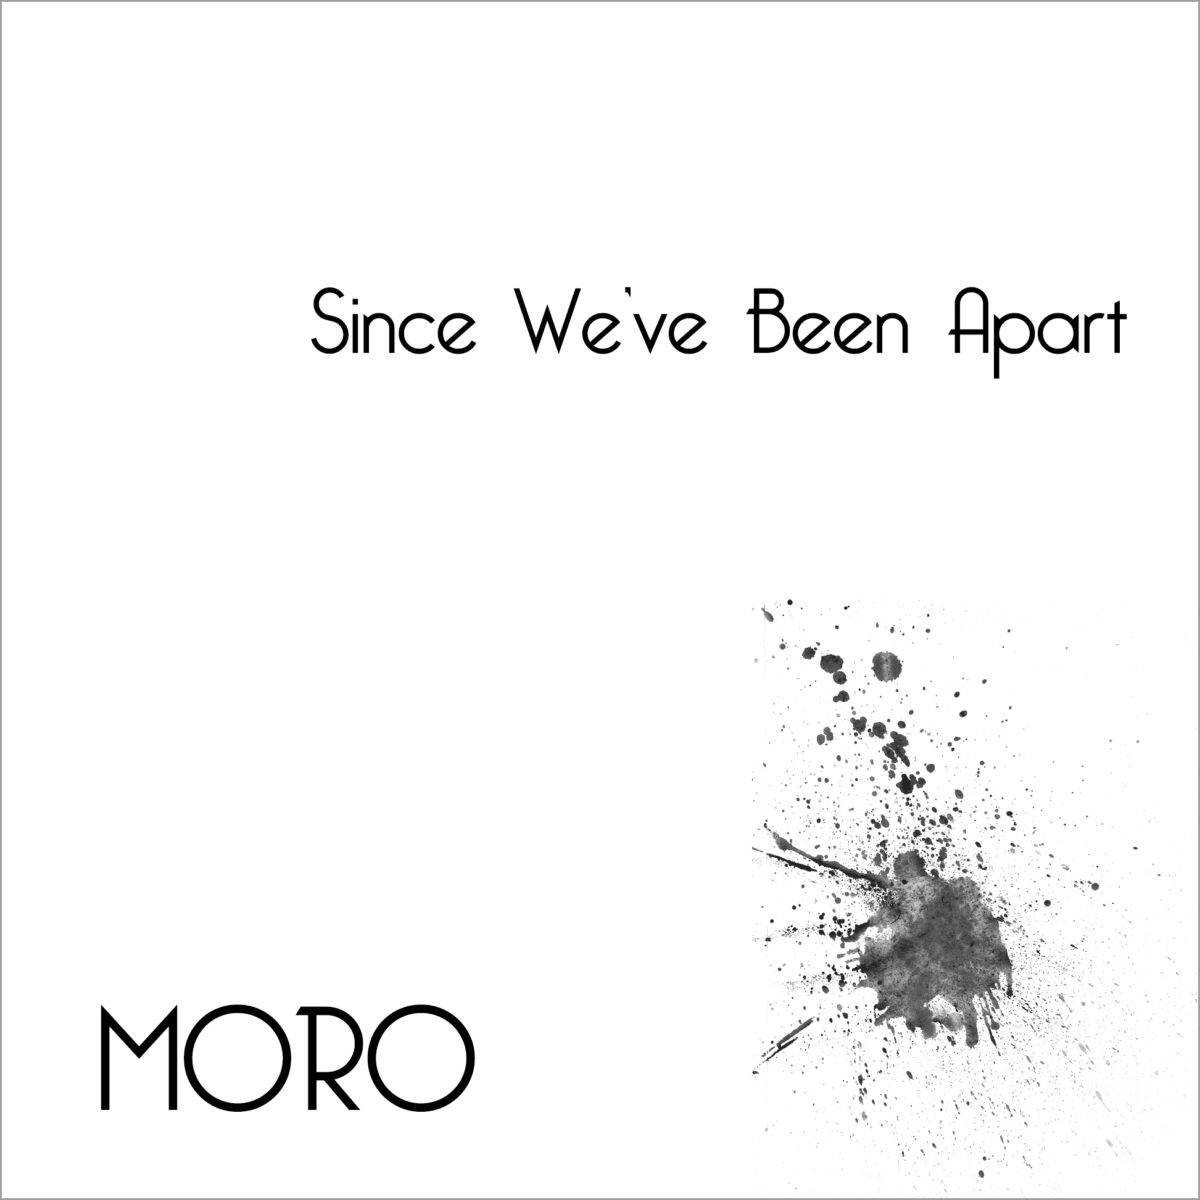 Since-We-ve-Been-Apart-Moro